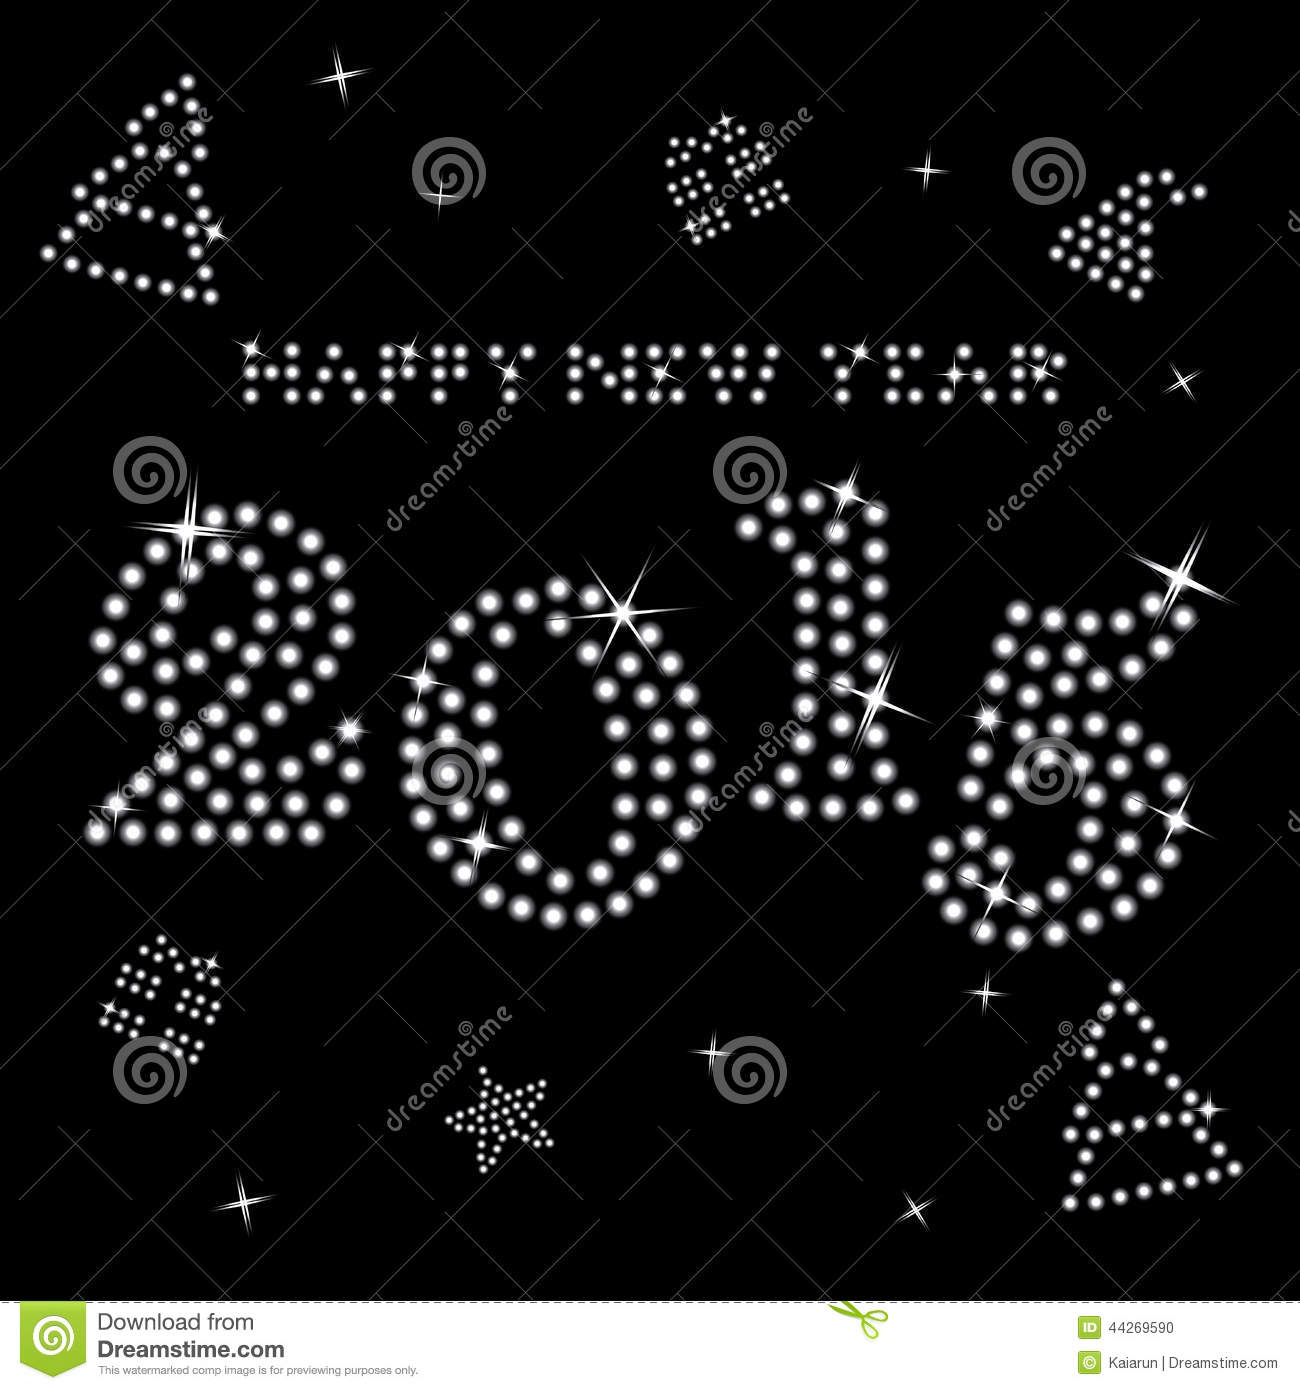 new years eve clipart 2015 - photo #32